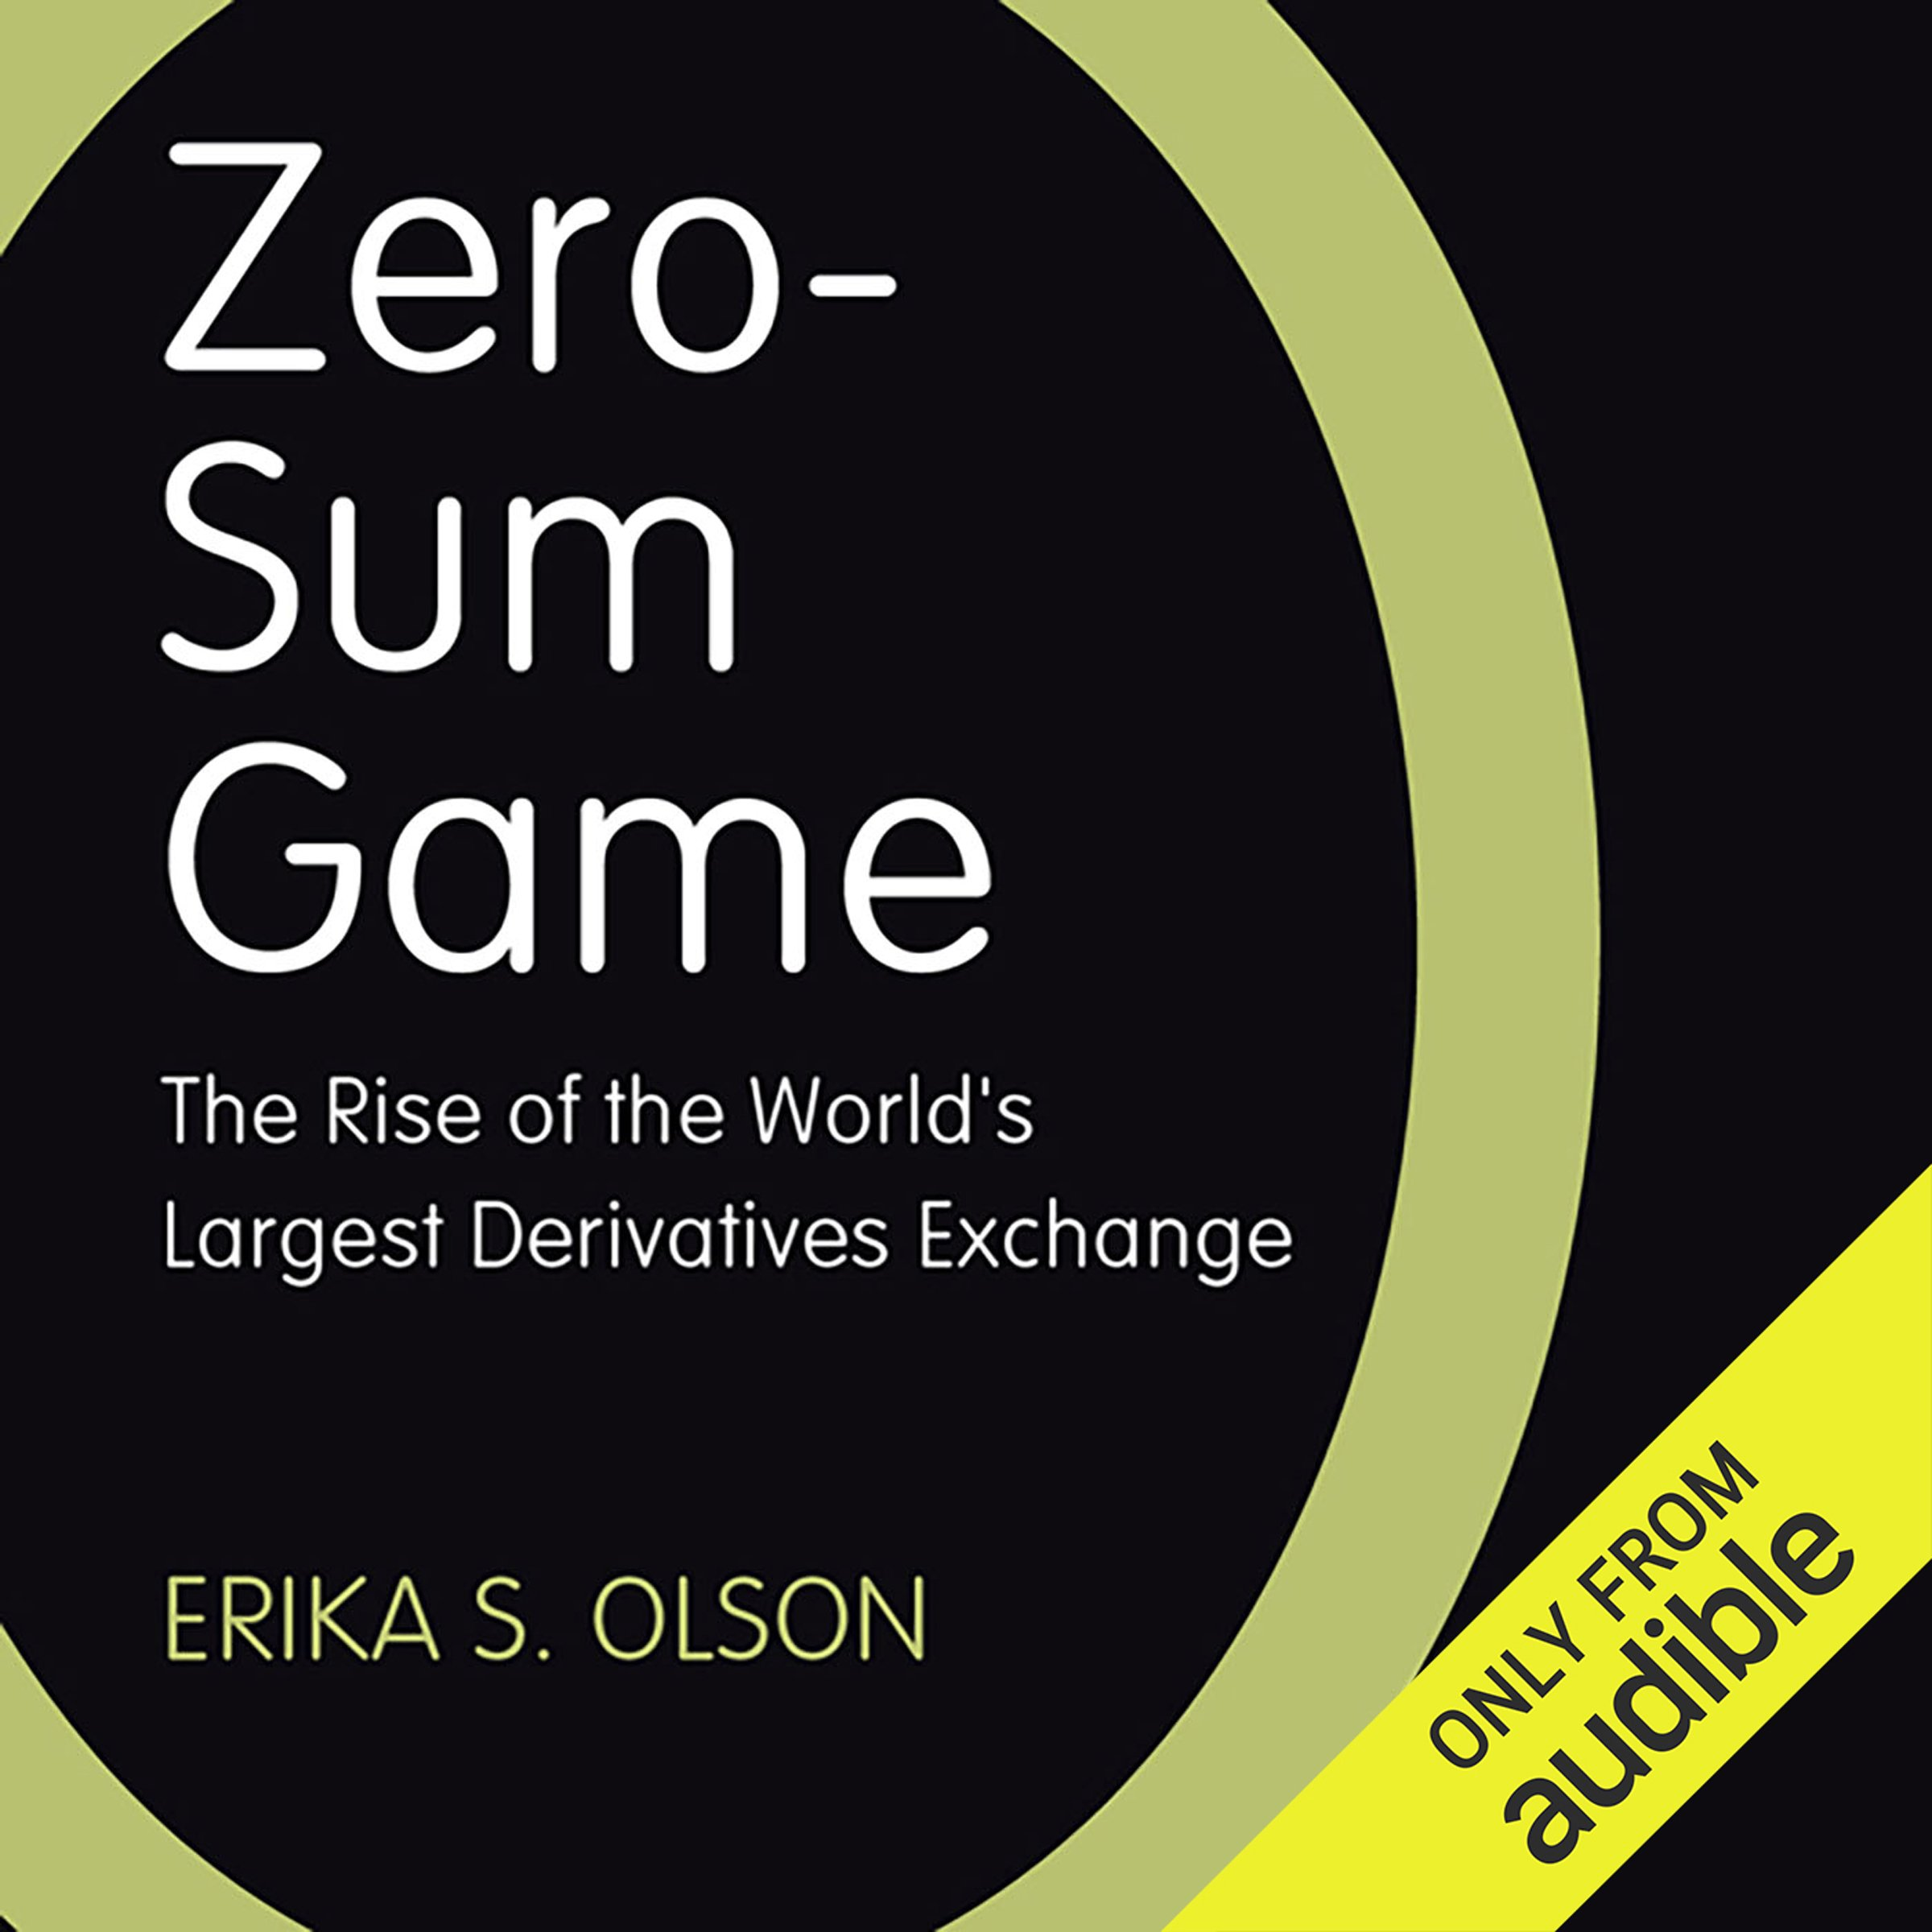 Zero-Sum Game: The Rise of the World's Largest Derivatives Exchange